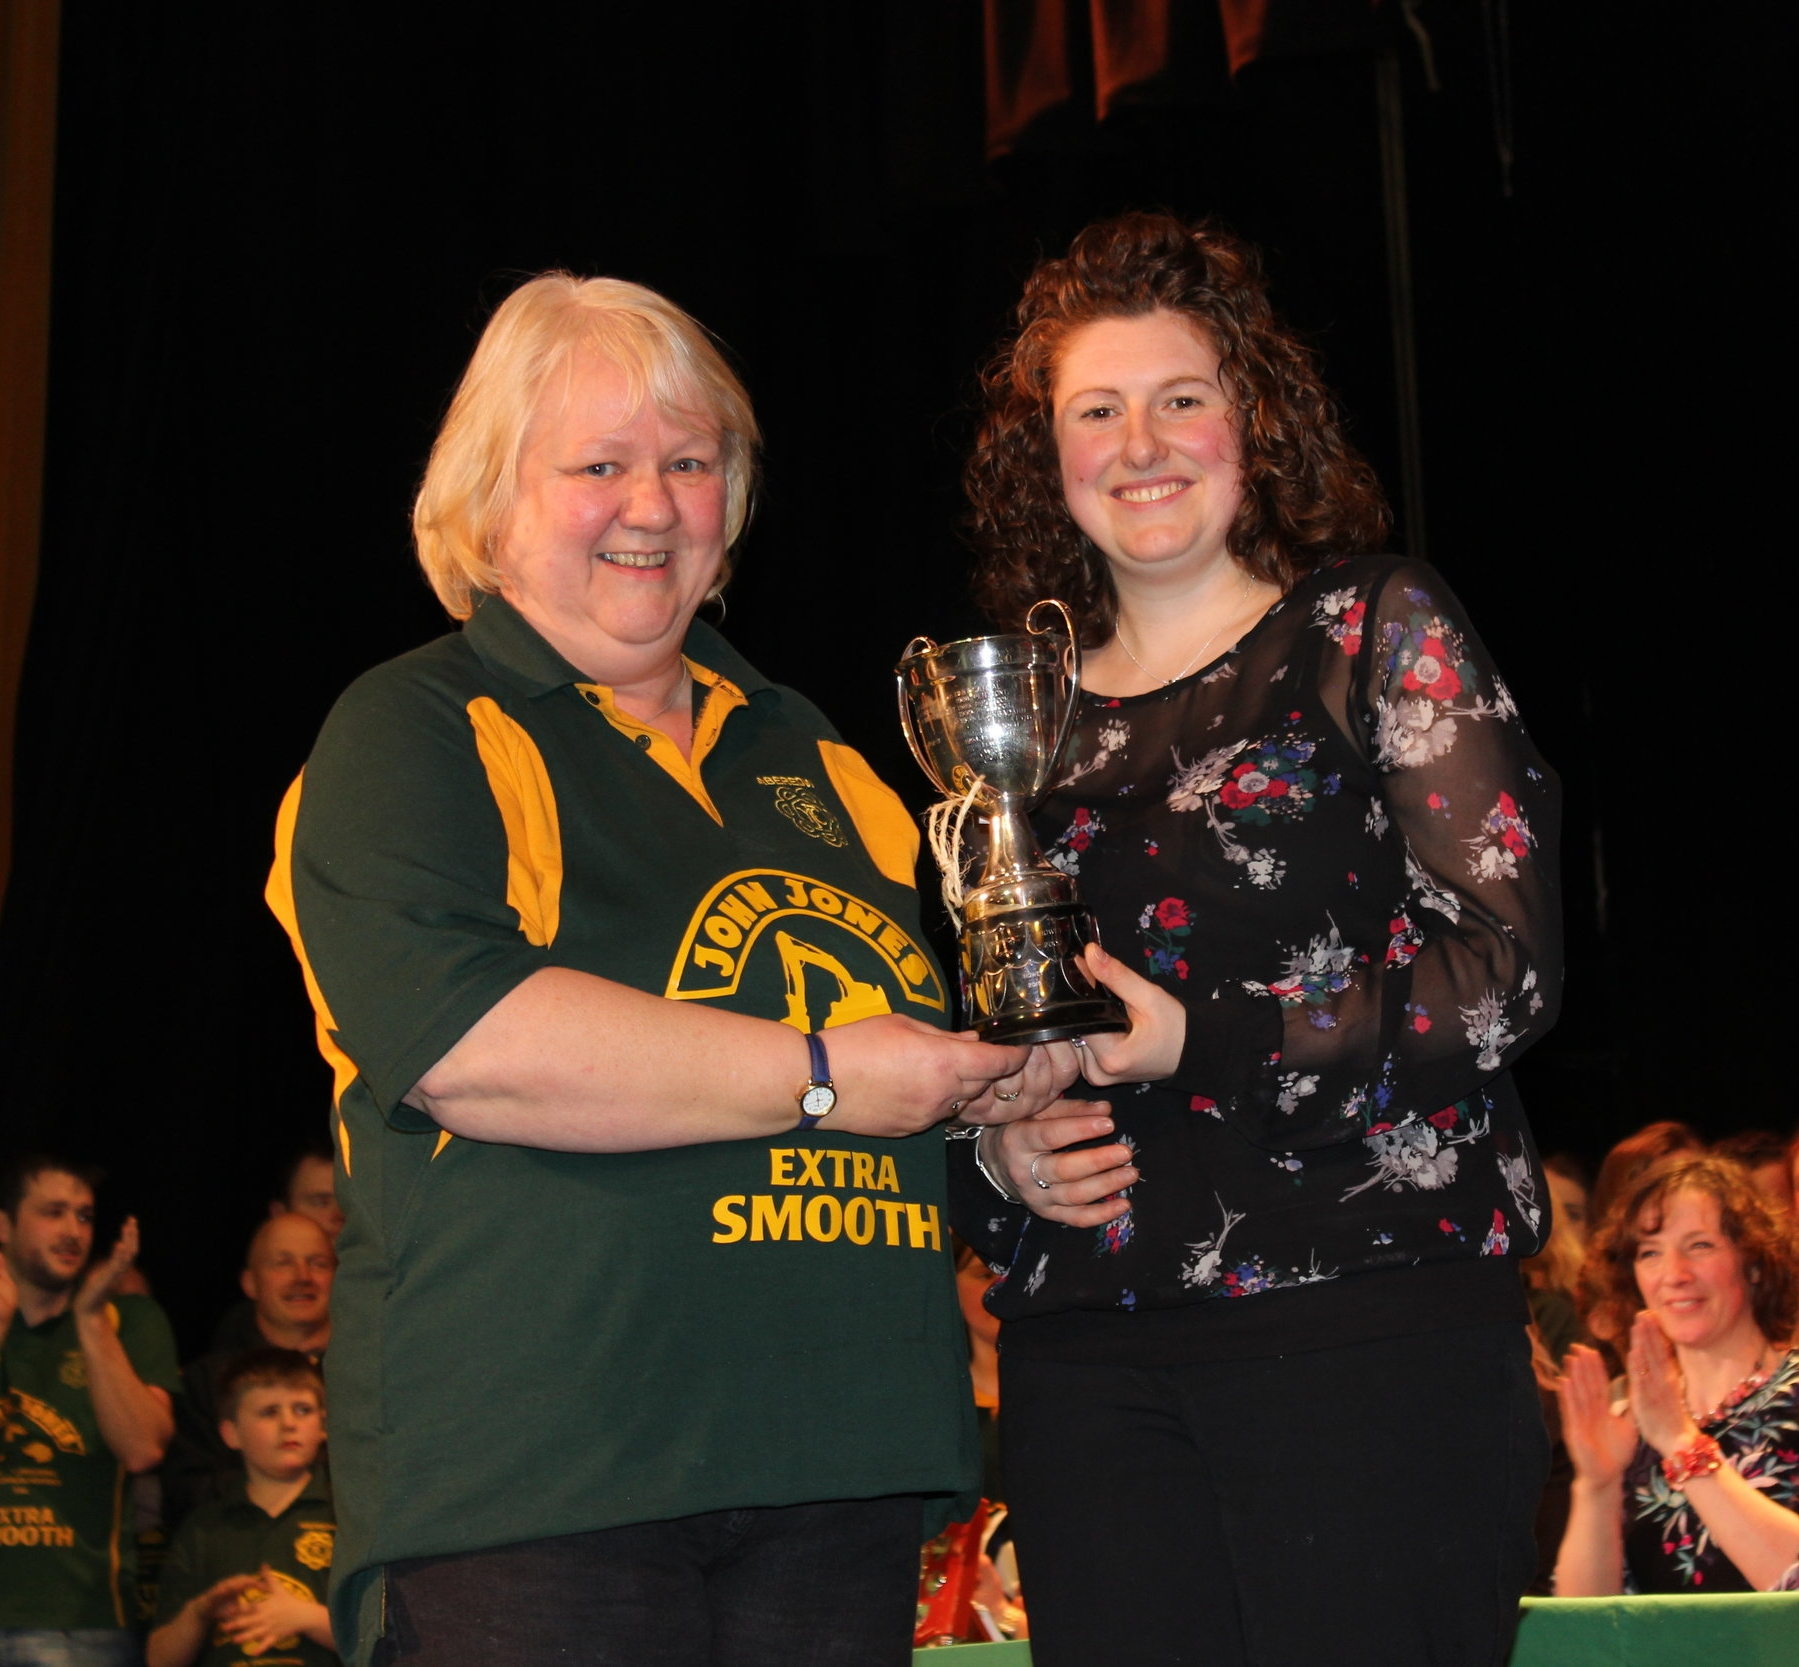 Michelle Morris, Aberedw YFC being presented with the 'Anna Golesworthy Cup' for 2nd placed Pantomime by Avril Hardwick, Barclays